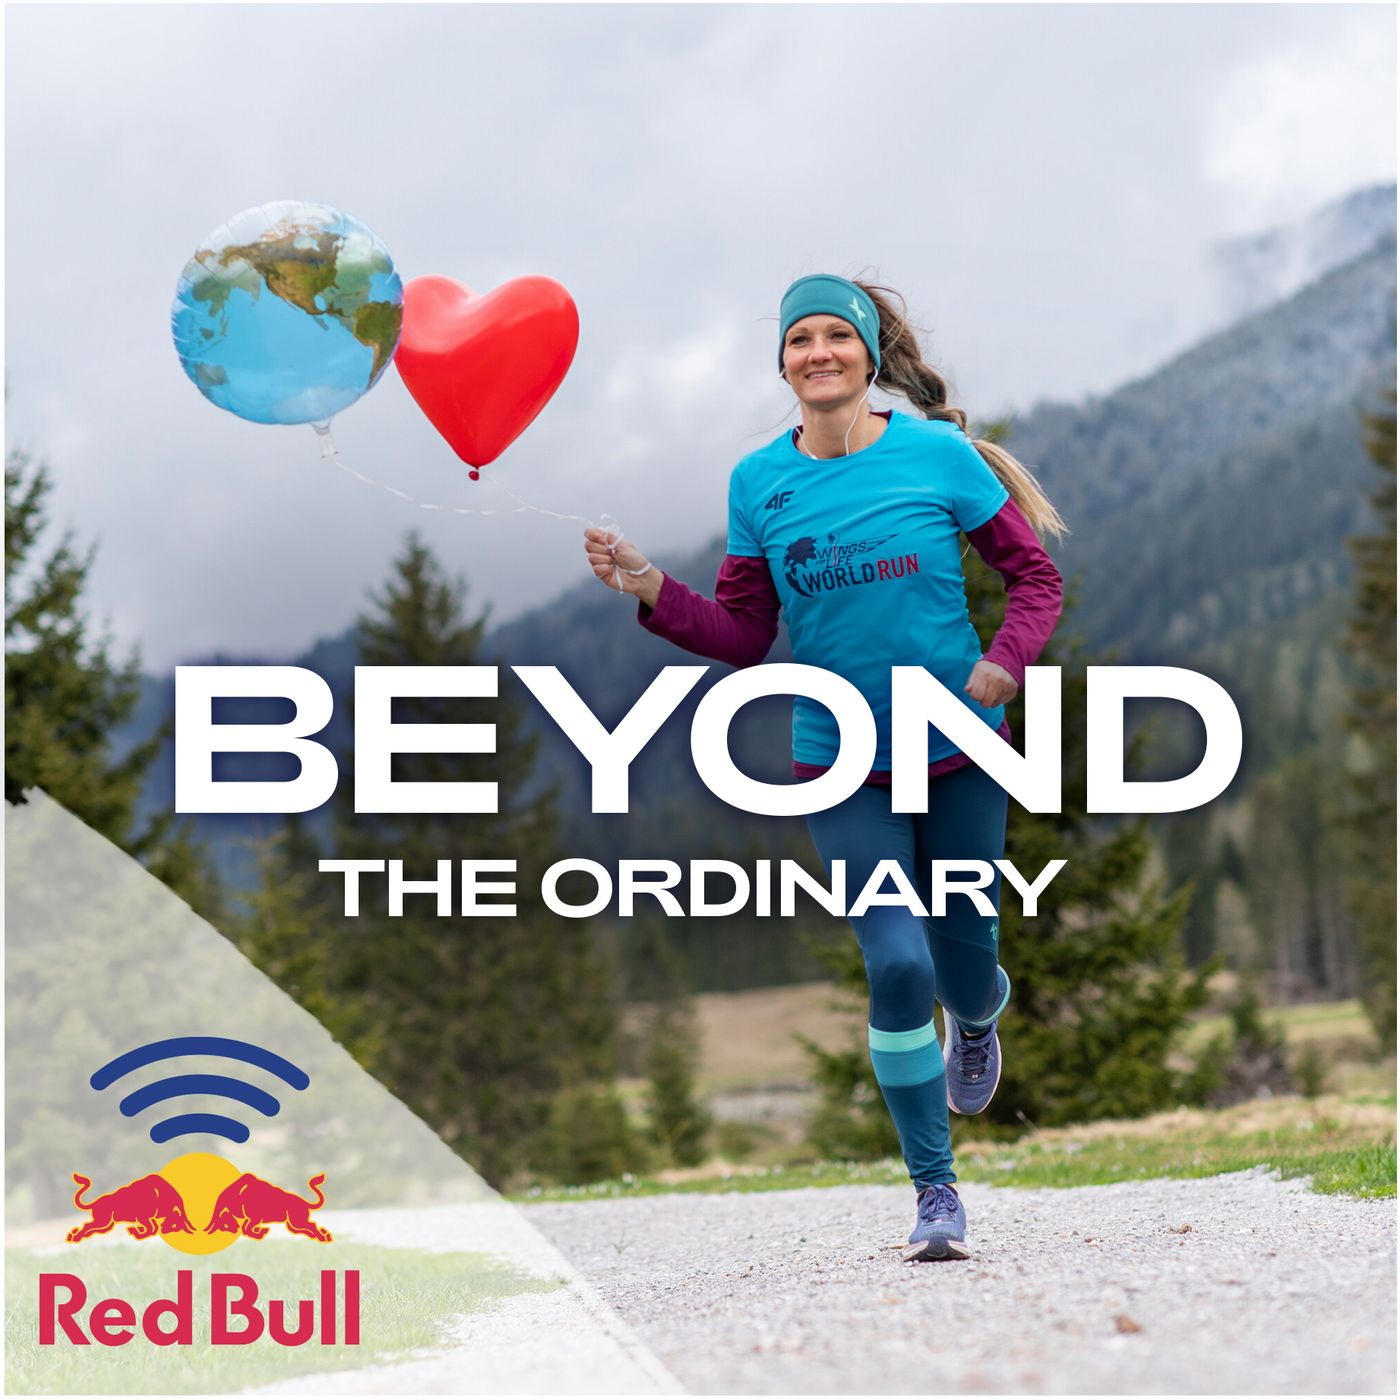 From paralysis to running with thousands across the globe: Wings for Life World Run